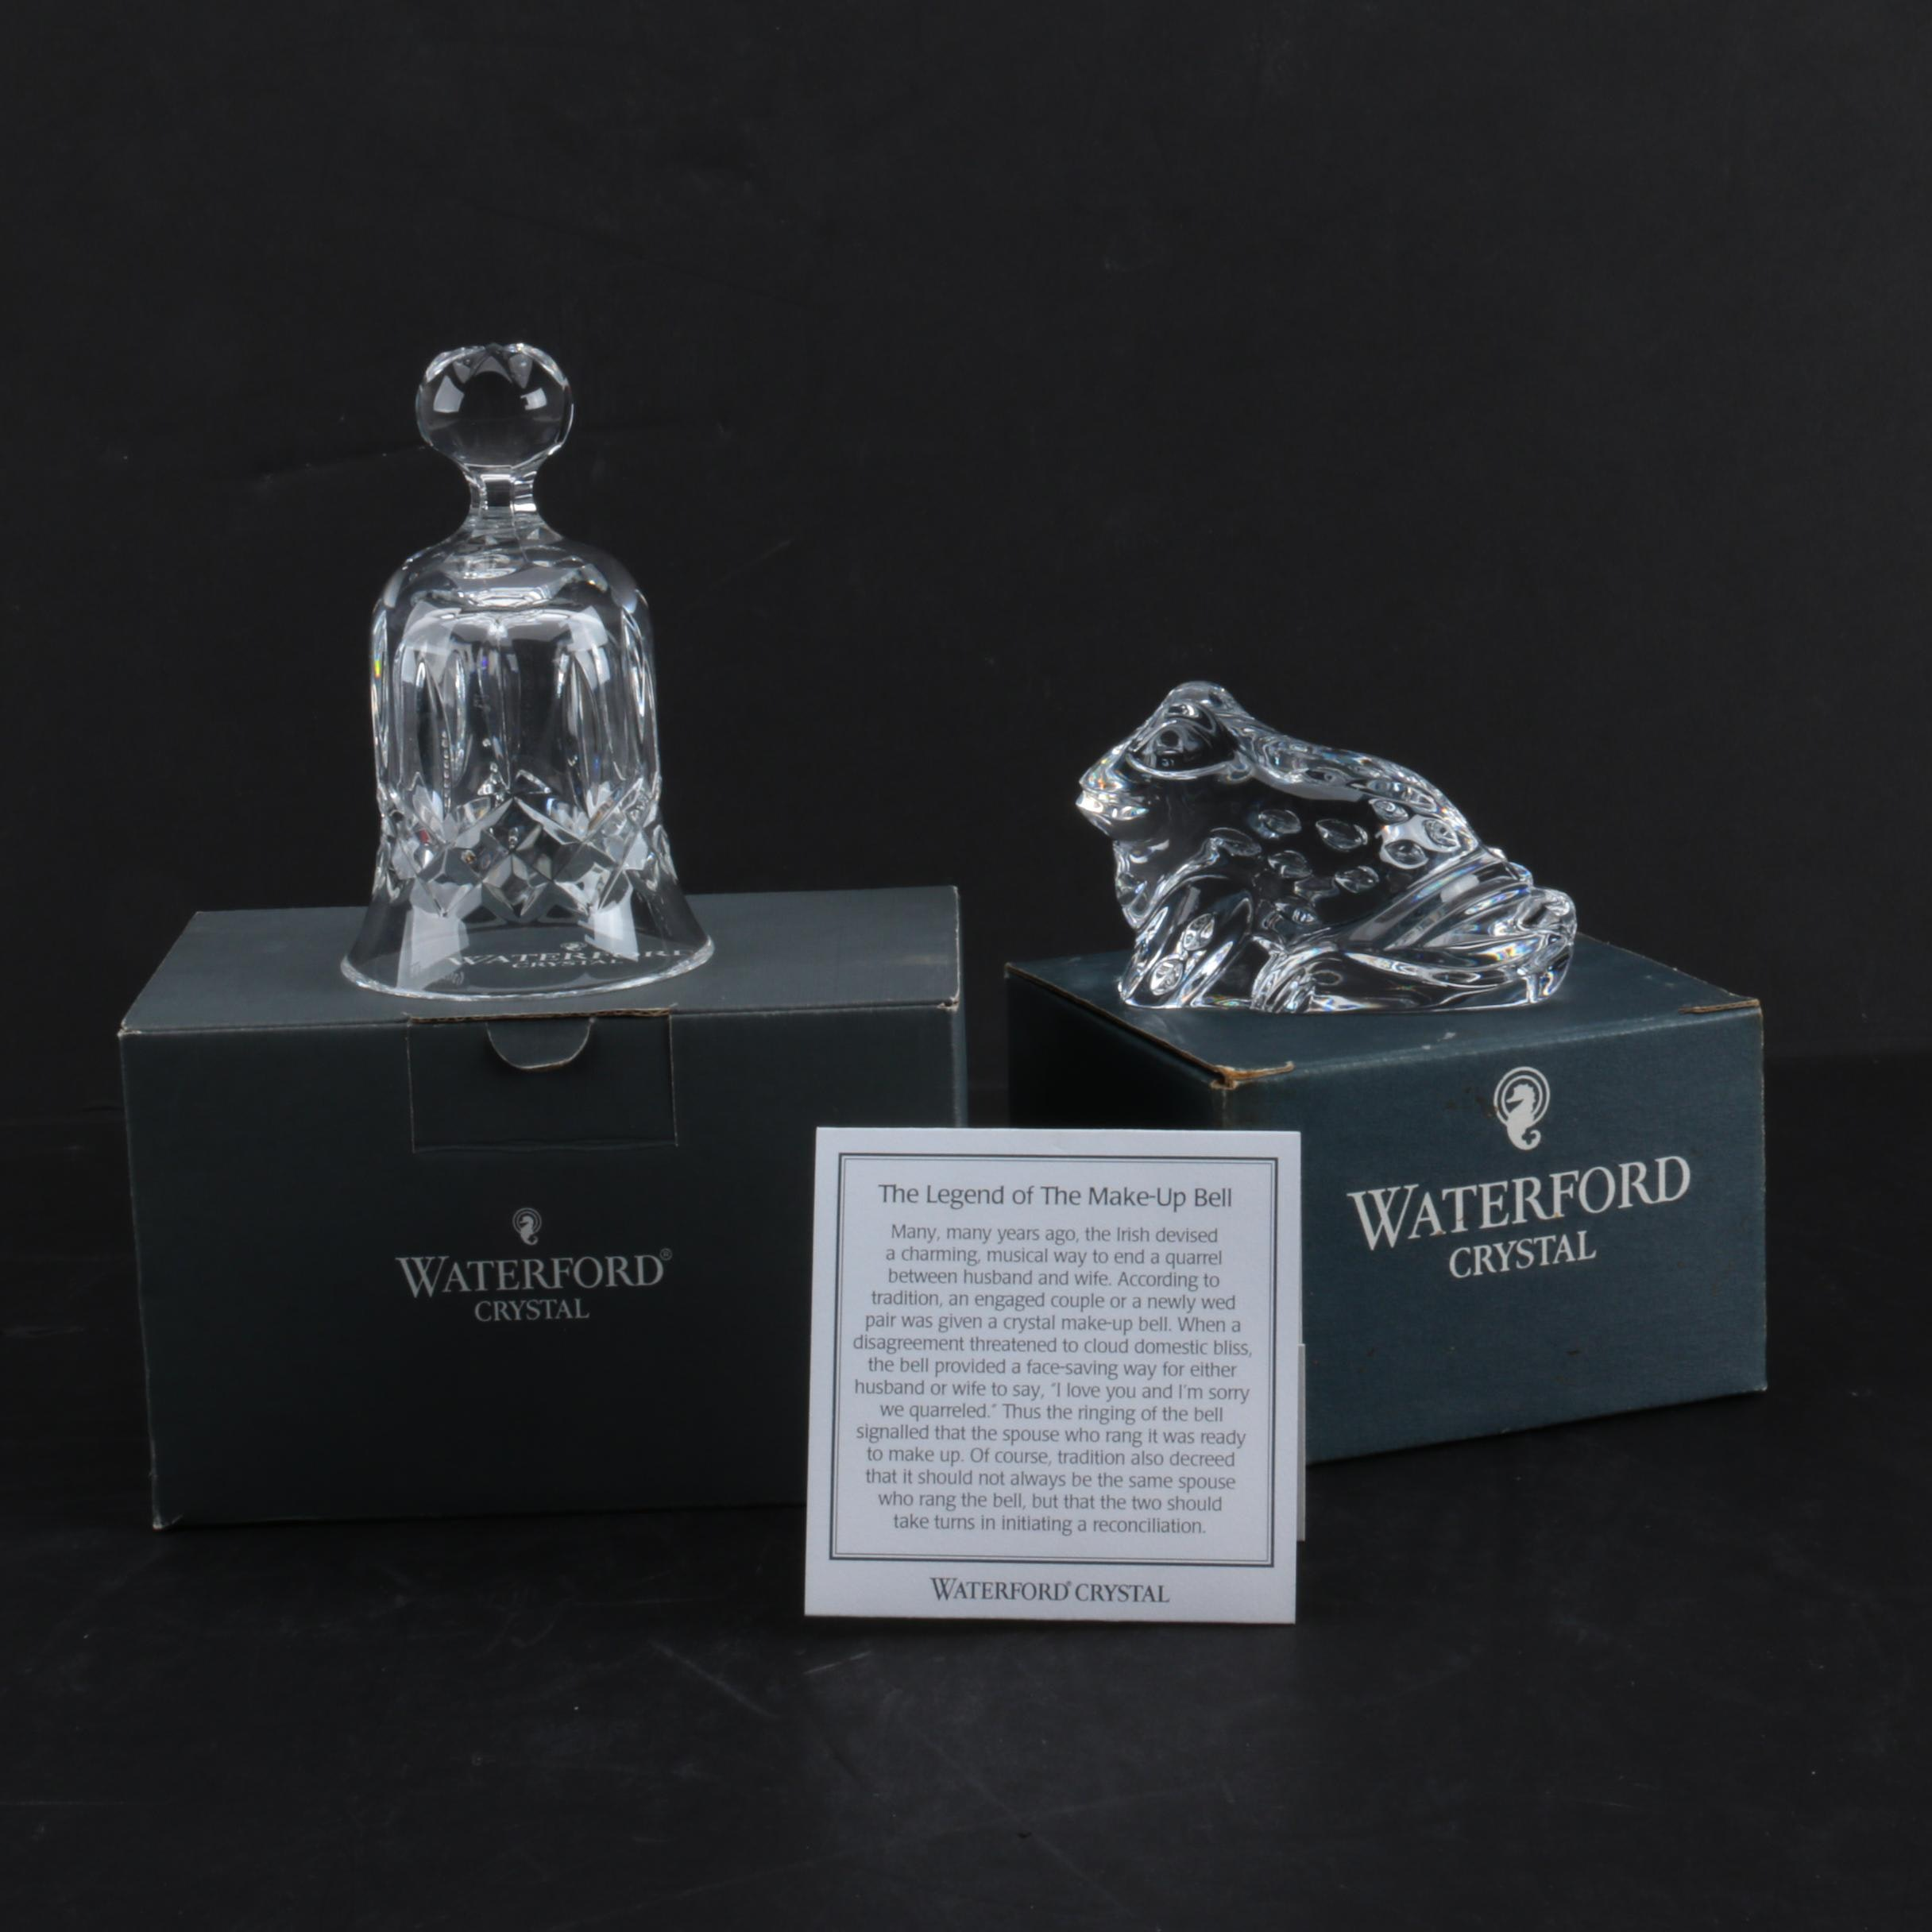 Waterford Crystal Hand Bell and Figurative Paperweight